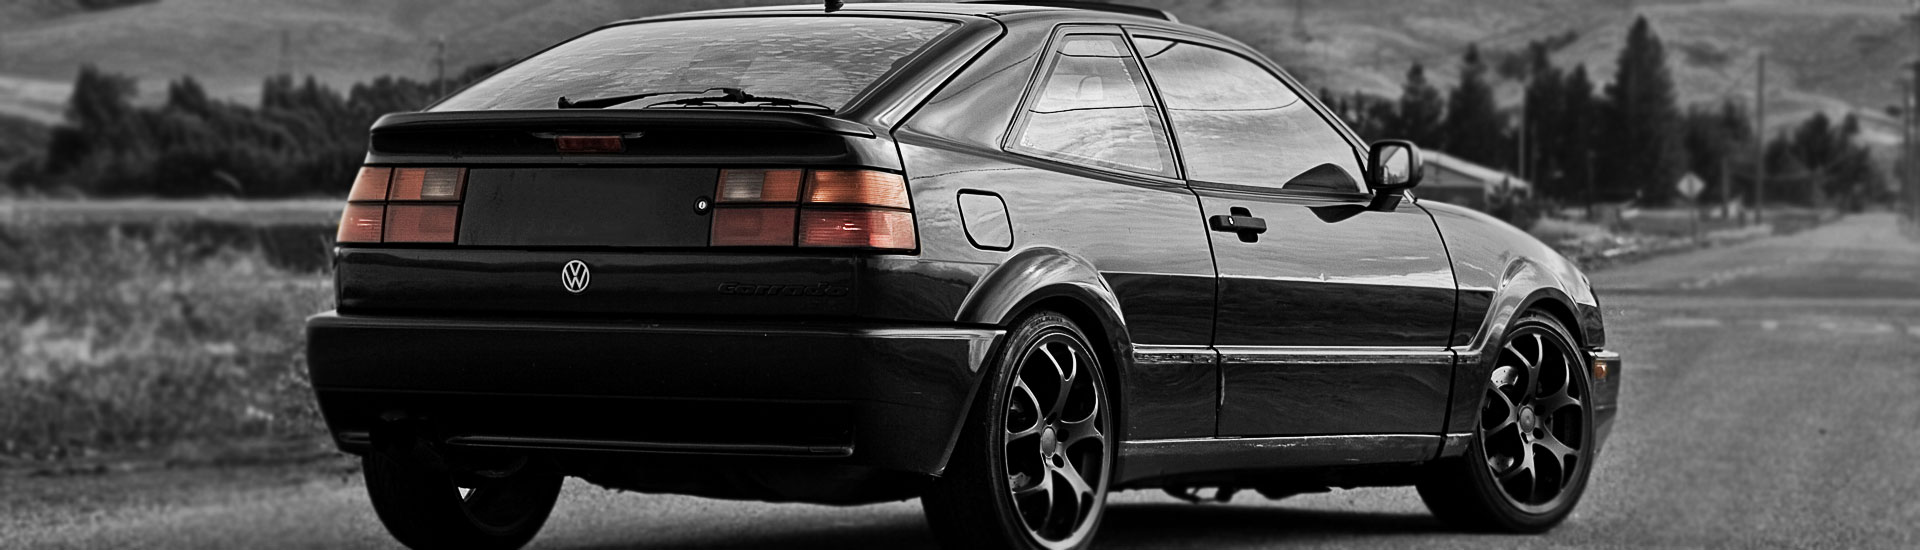 Volkswagen Corrado Window Tint